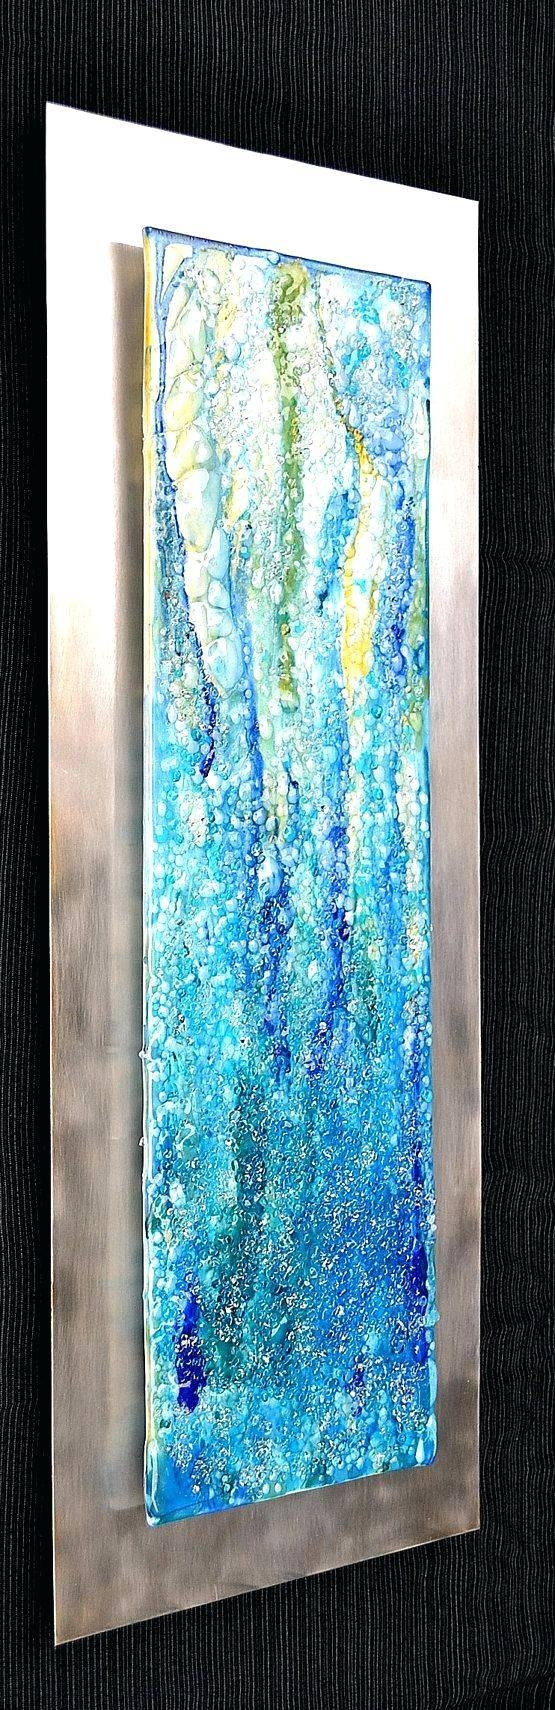 Wall Arts ~ Metal Wine Glass Wall Art Stained Glass Metal Wall Art Pertaining To Most Recent Glass And Metal Wall Art (View 18 of 20)